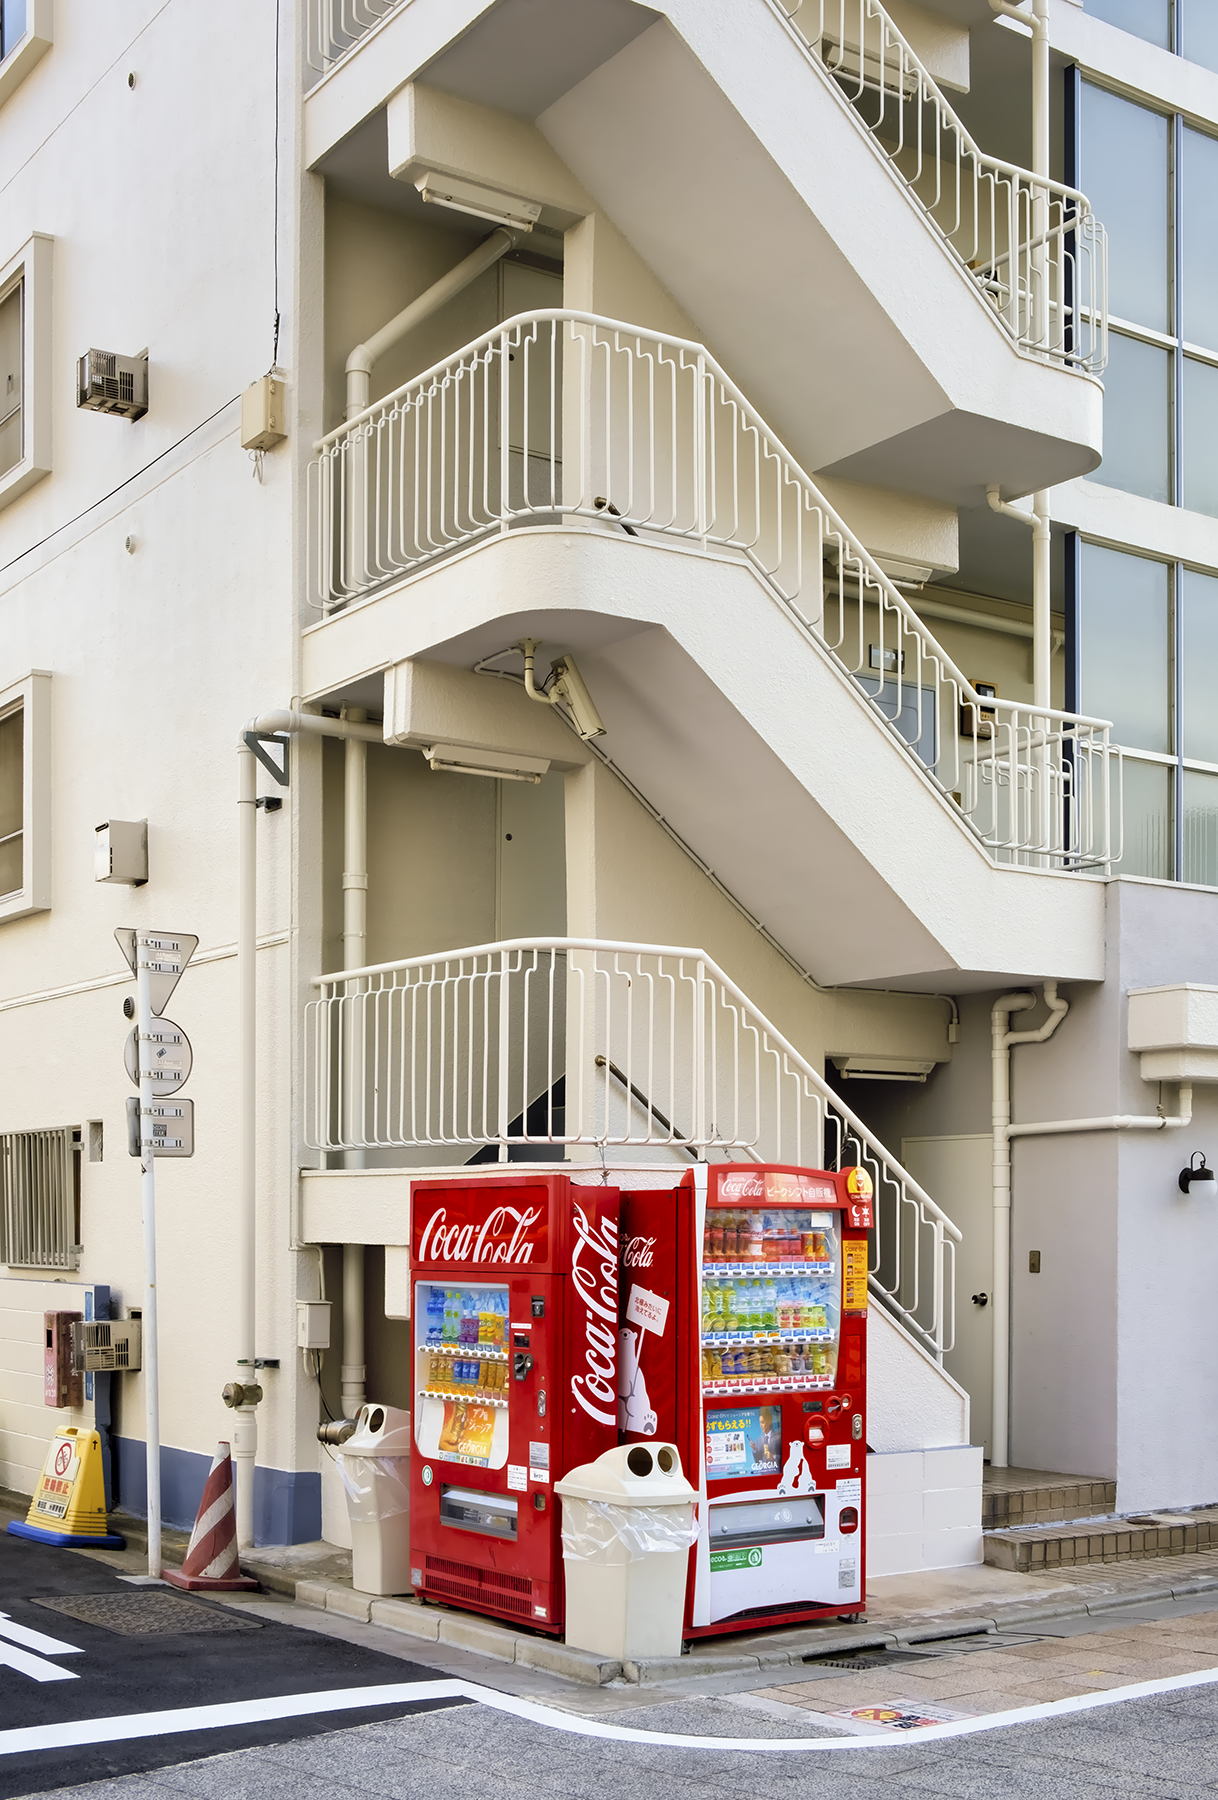 Doug_Caplan_Japanese-Vending-Machines_Untitled_06.jpg